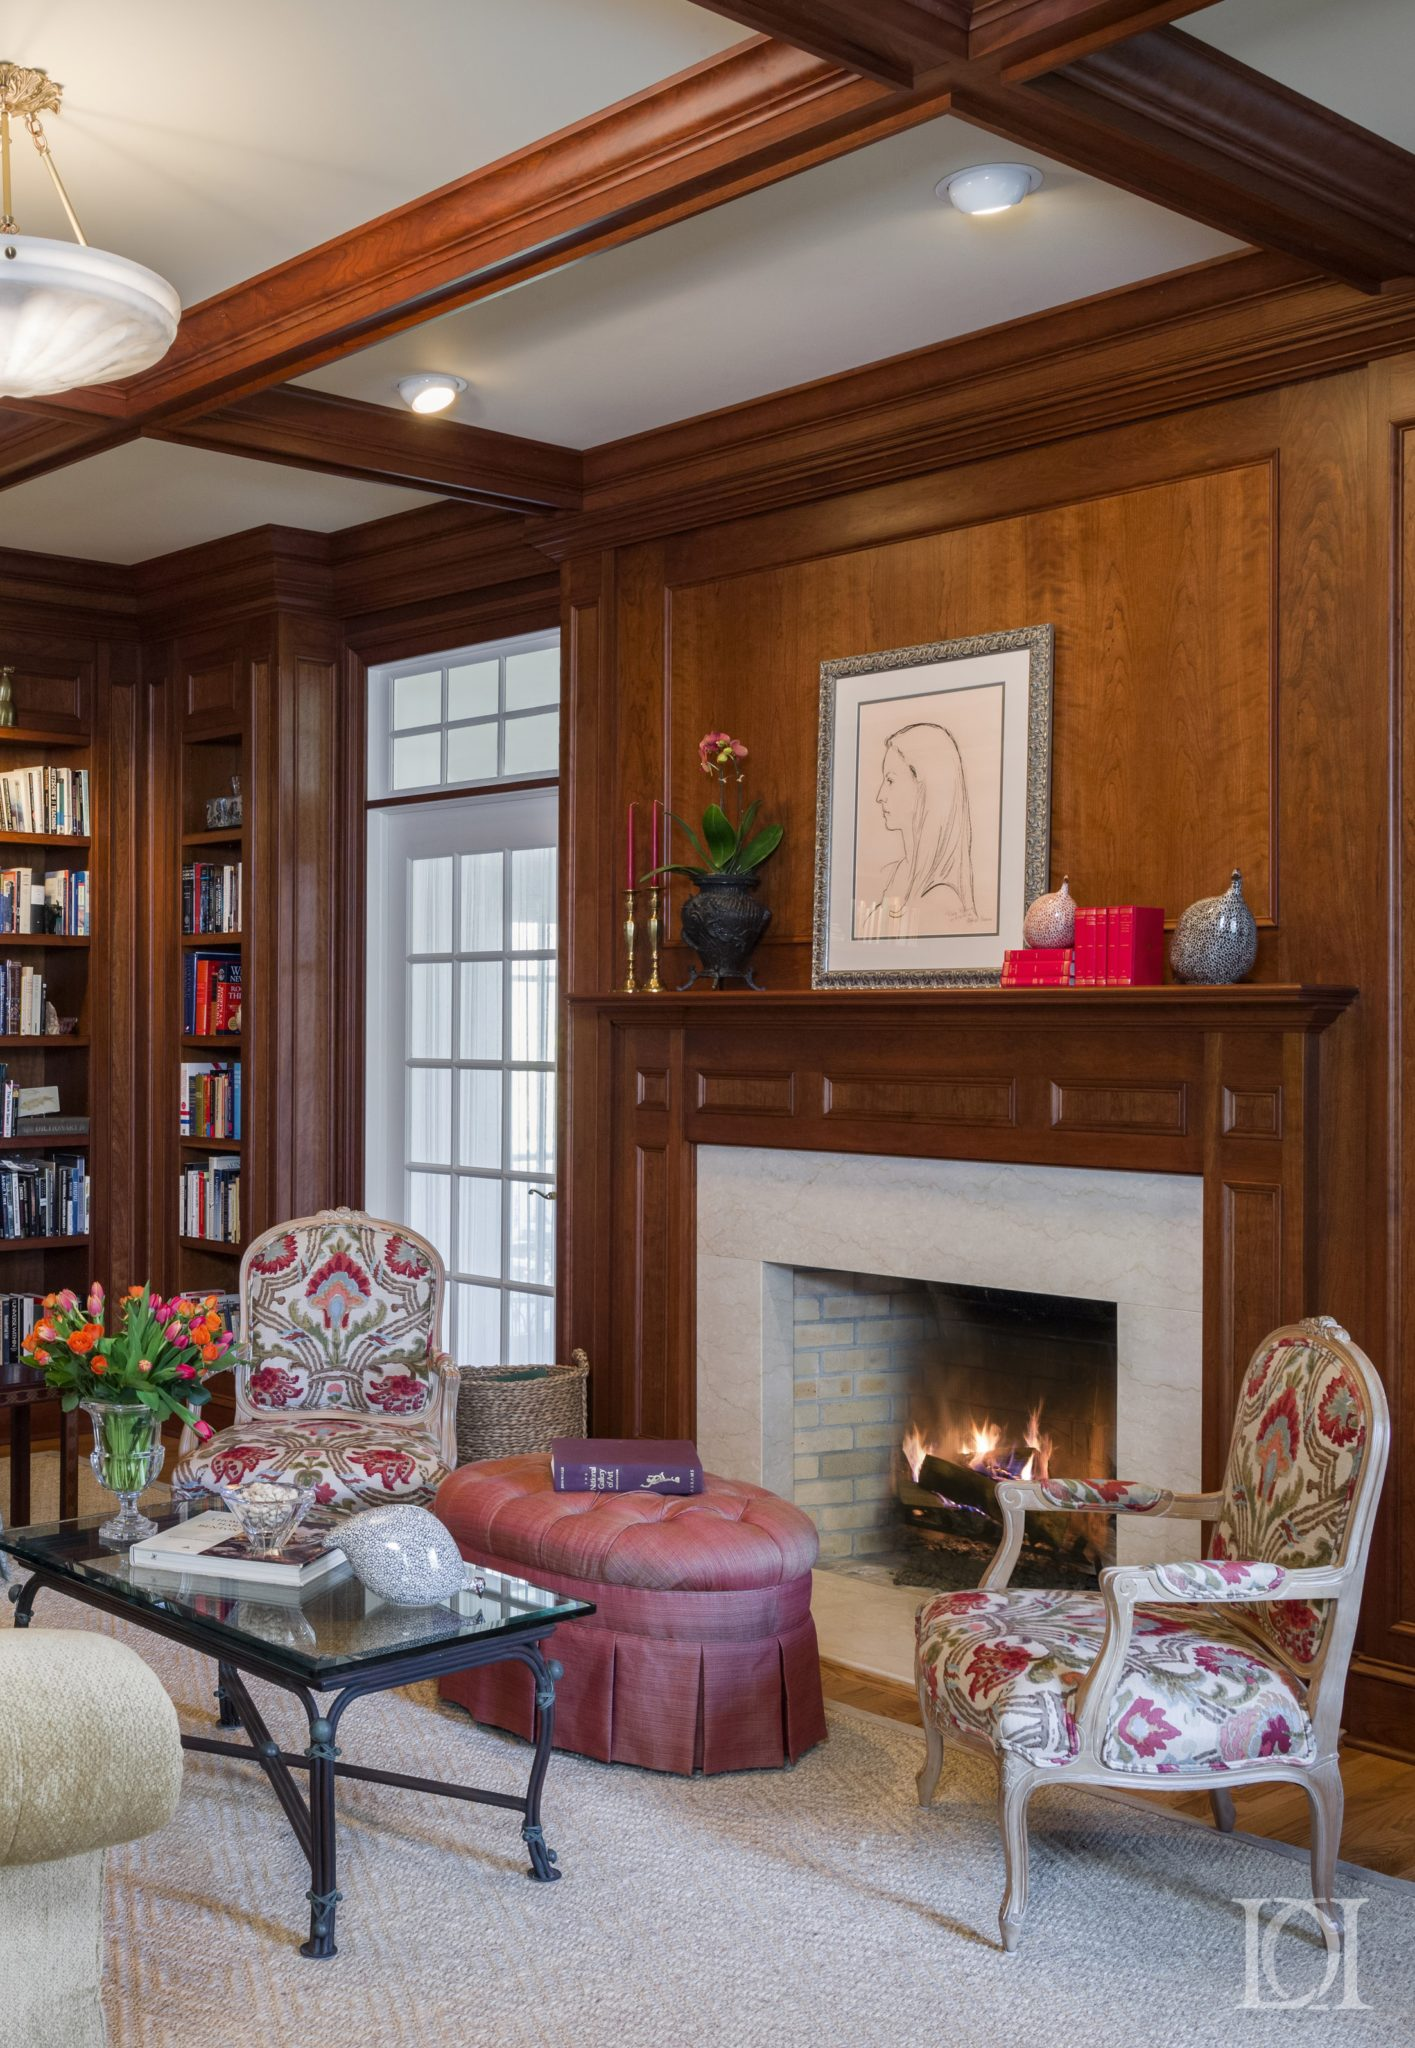 Living room reimagined into a full panel library with coffered ceiling and panels by Deborah Leamann Interior Design